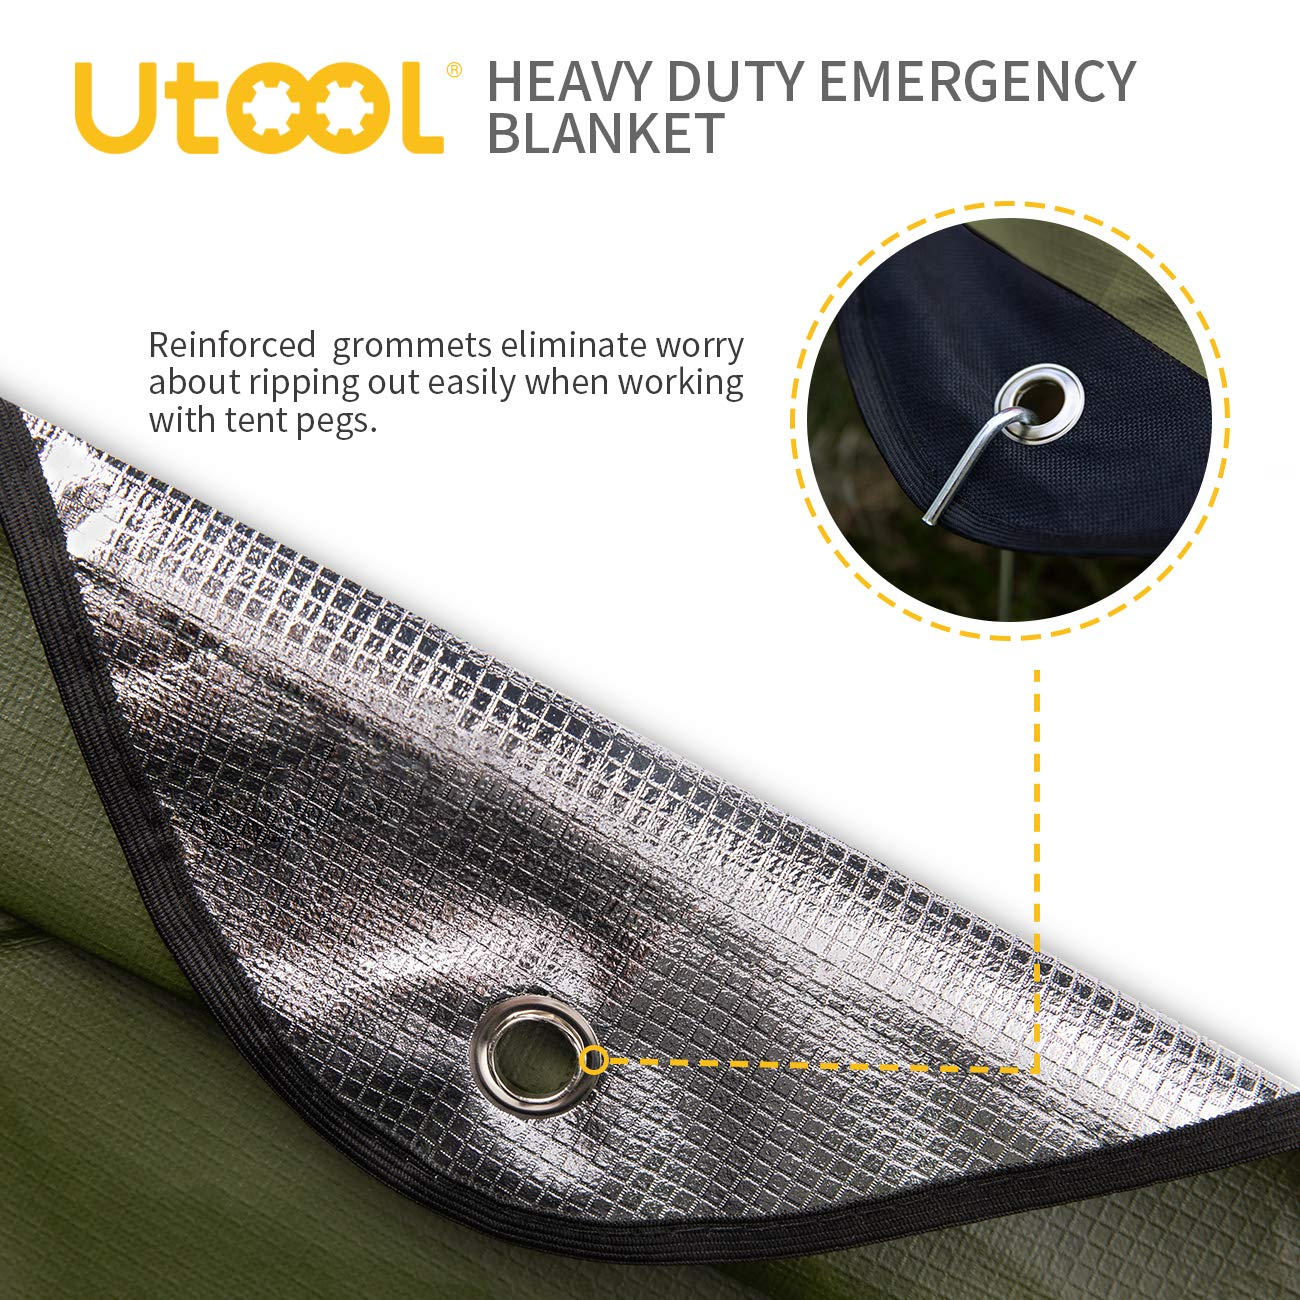 Extra Large Thermal Reflective Survival Outdoor Emergency Blanket with Water Proof Tear Resistant 93/% Heat Retention Reusable Features Utool Heavy Duty Emergency Blanket Survival Tarp